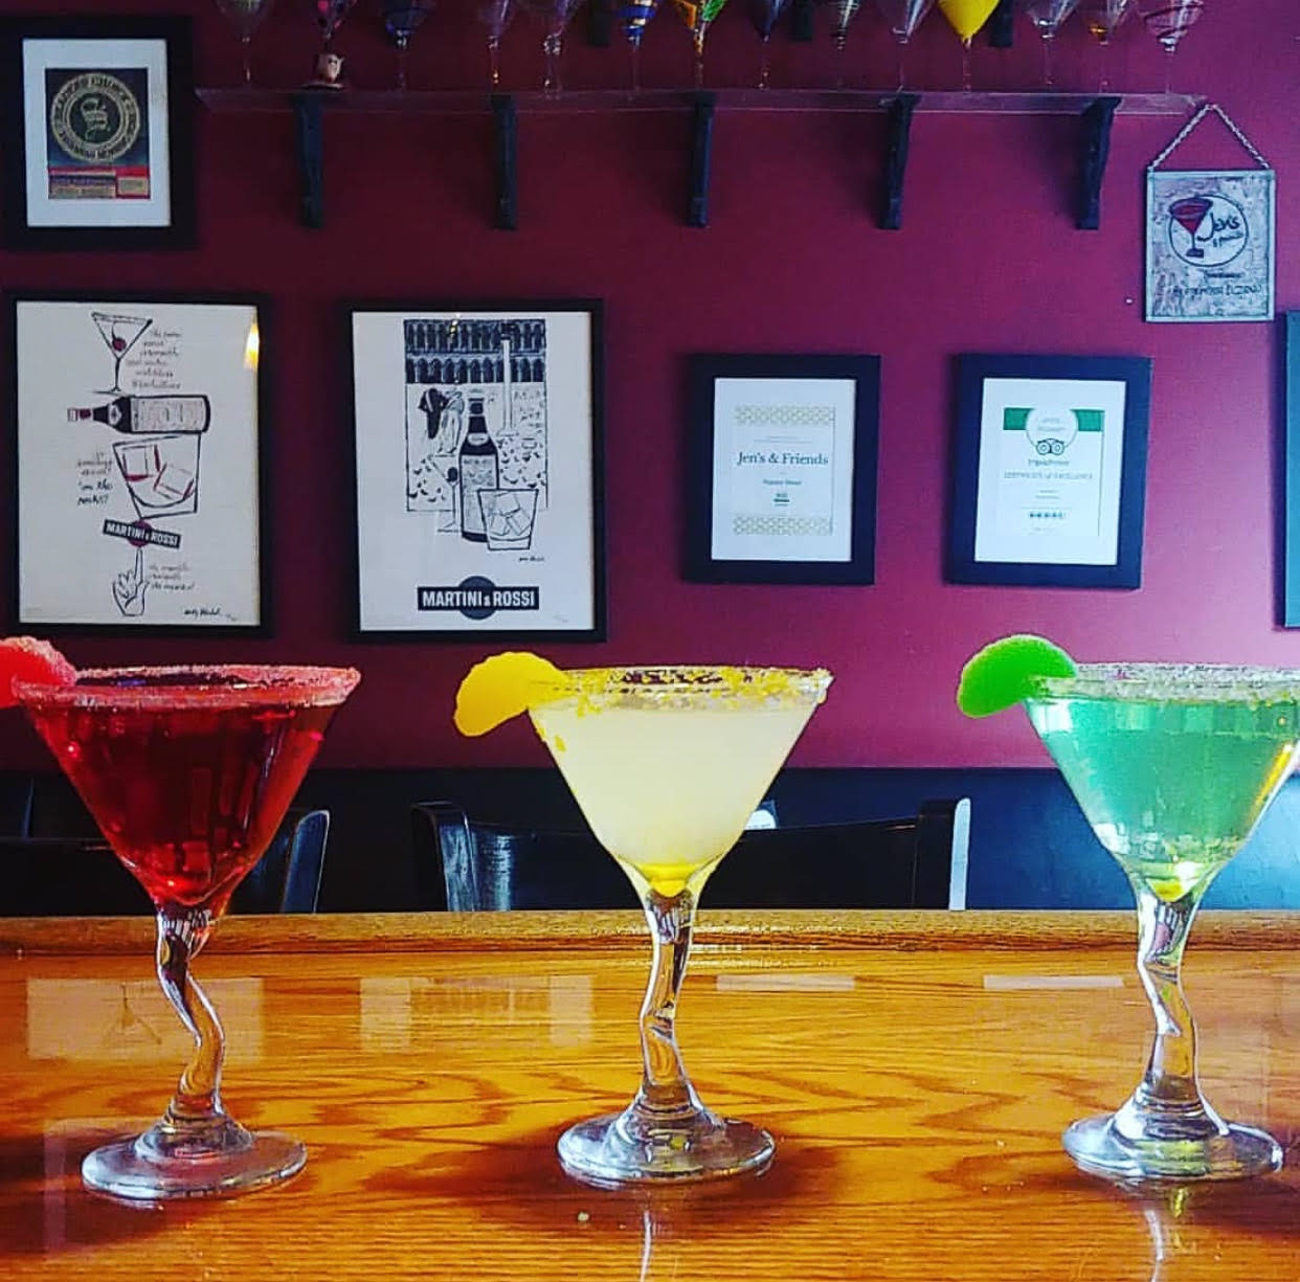 Finish your night out in Savannah at Jen's and Friends, a popular bar with 300 martinis on the menu! / Image: Jen's and Friends // Published: 3.8.19